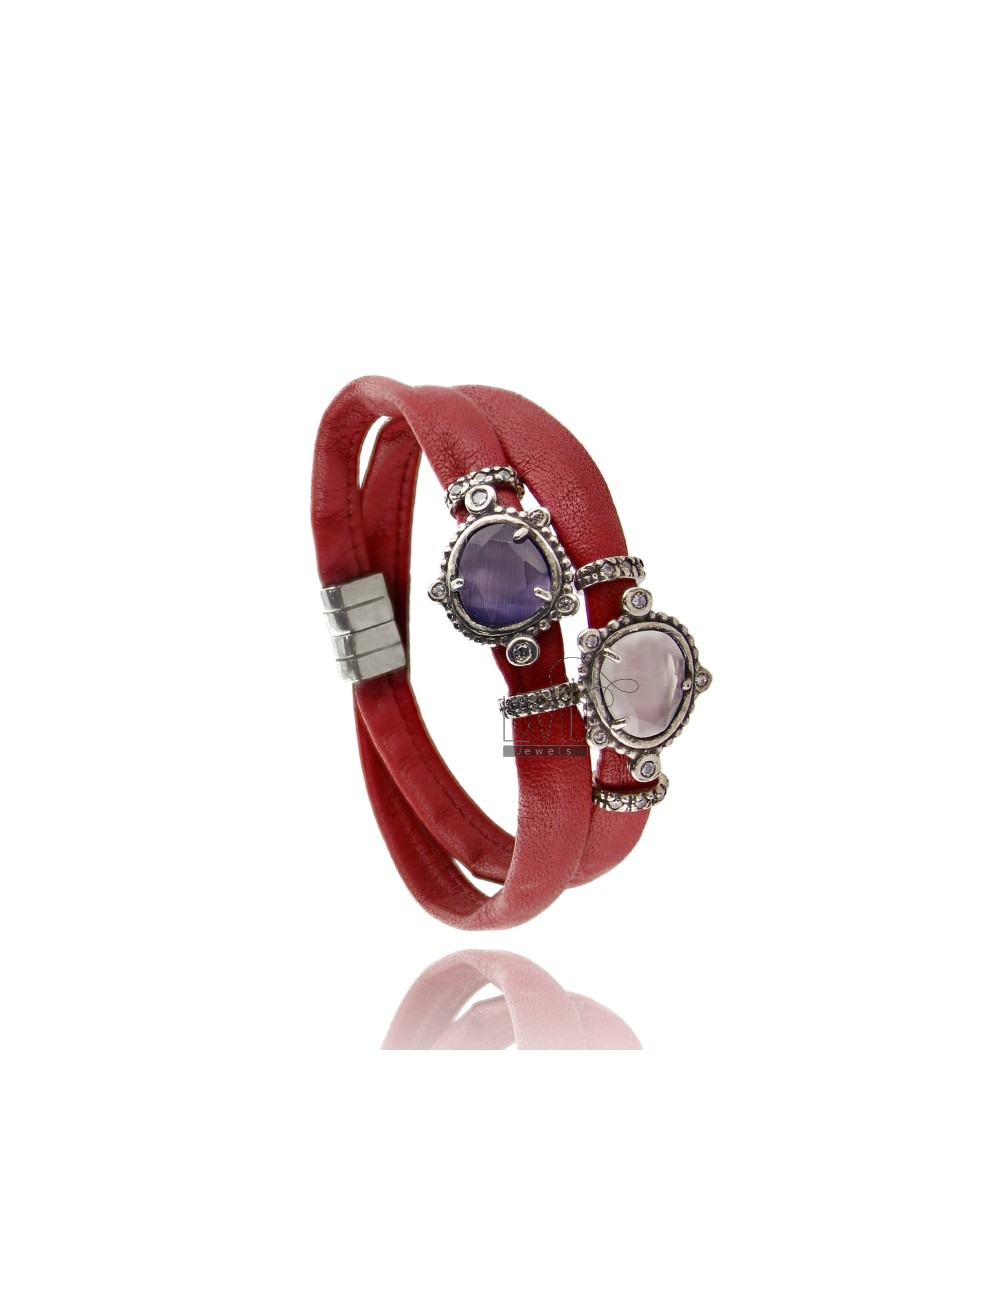 BRACELET DOUBLE TURN RED LEATHER, CENTRAL WITH STONES HYDROTHERMAL SASSO, ZIRCONIA AND MAGNETIC CLOSURE IN ANCIENT AG RODIO TIT